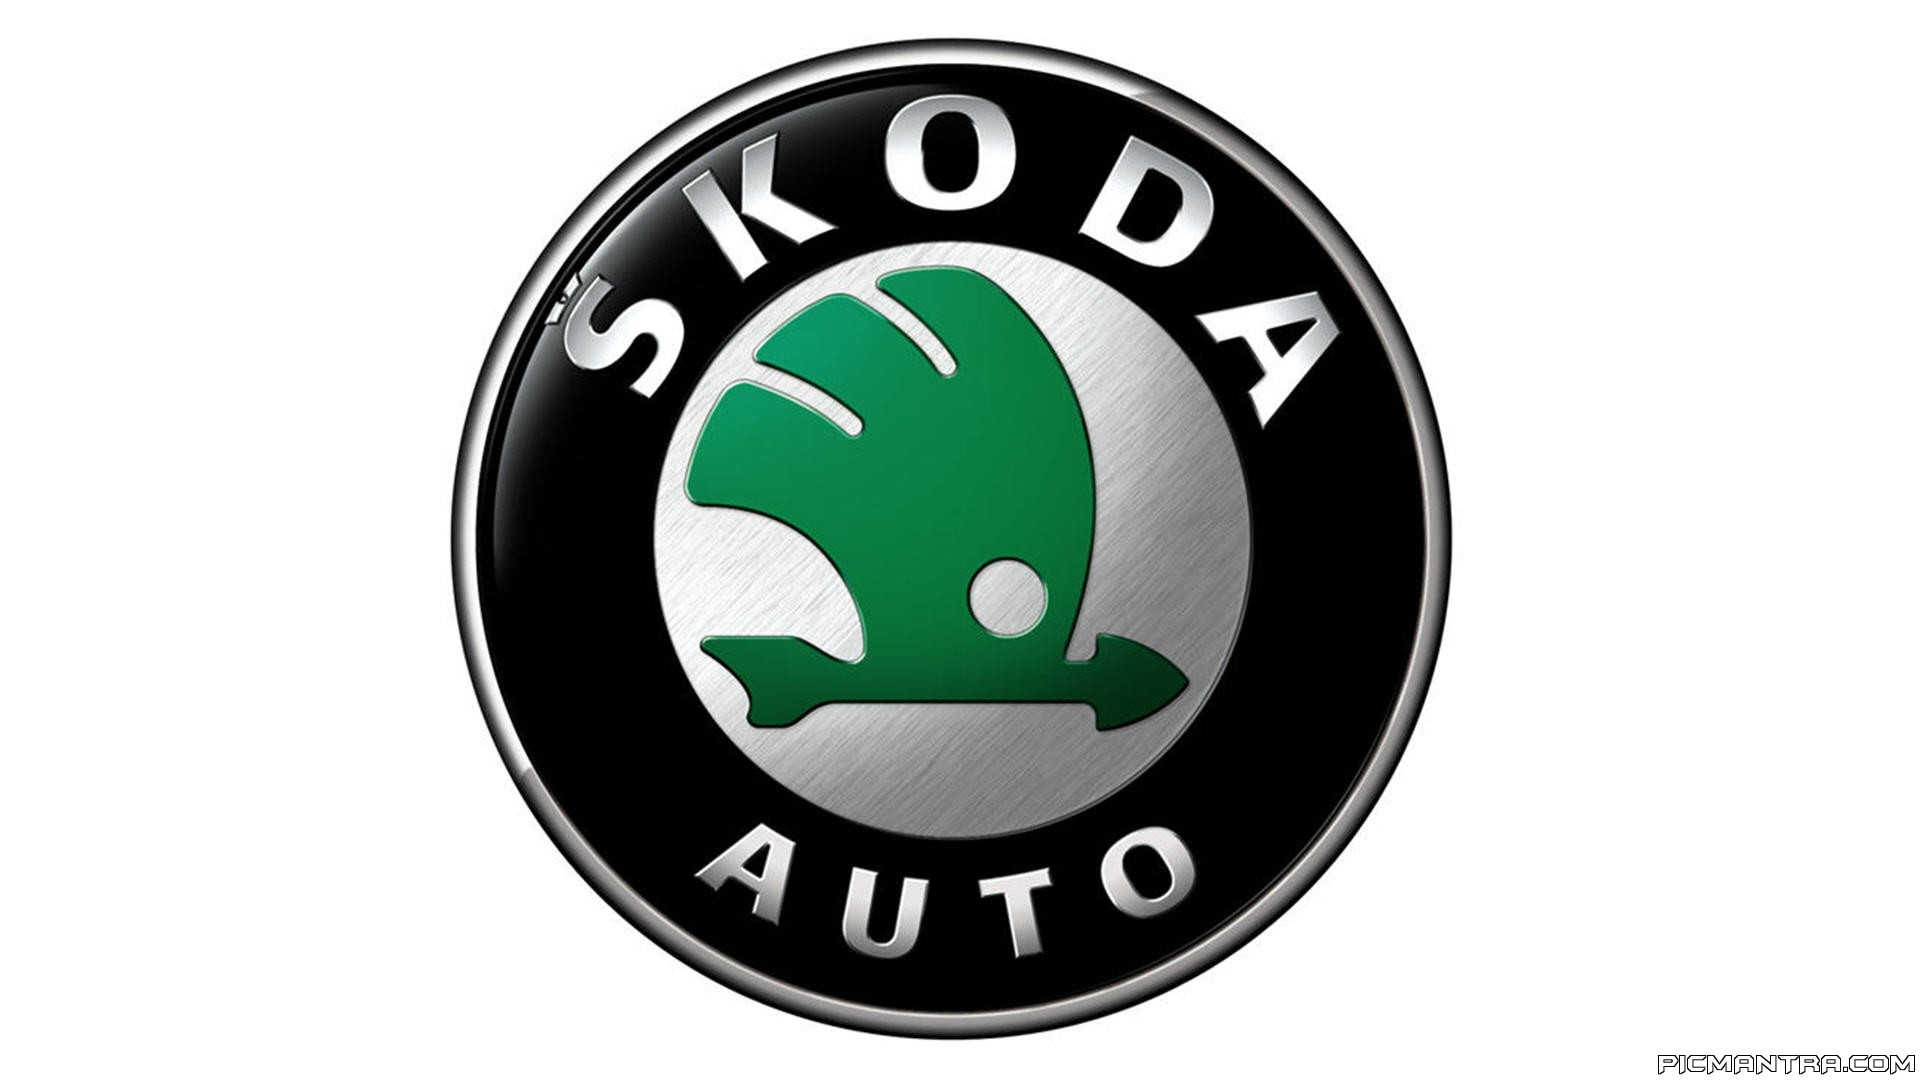 Skoda logo hd wallpaper